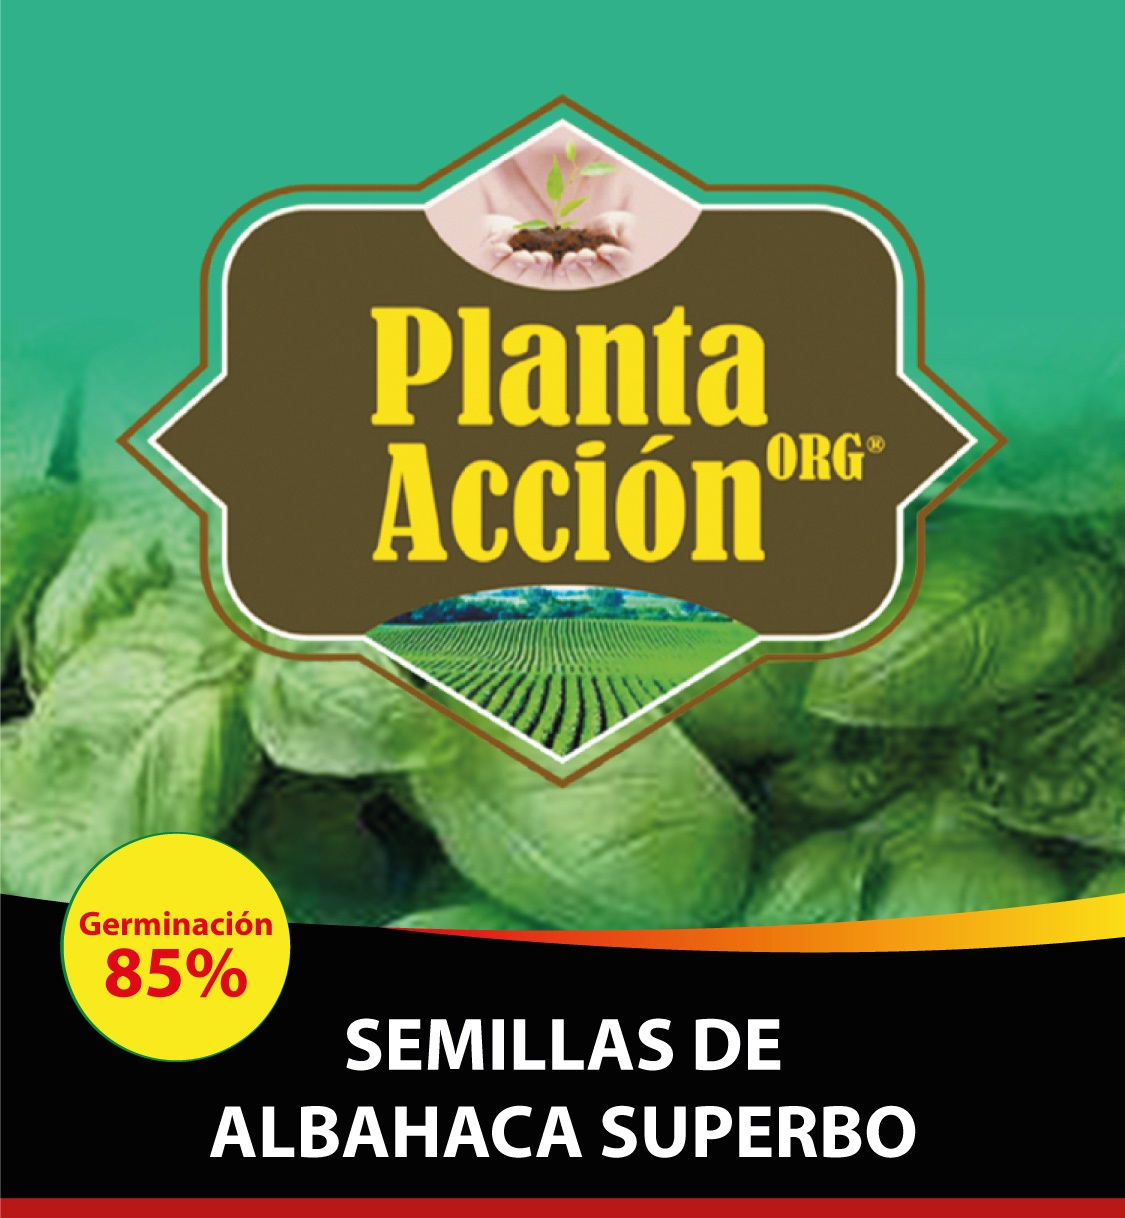 SEMILLAS DE ALBAHACA SUPERBO